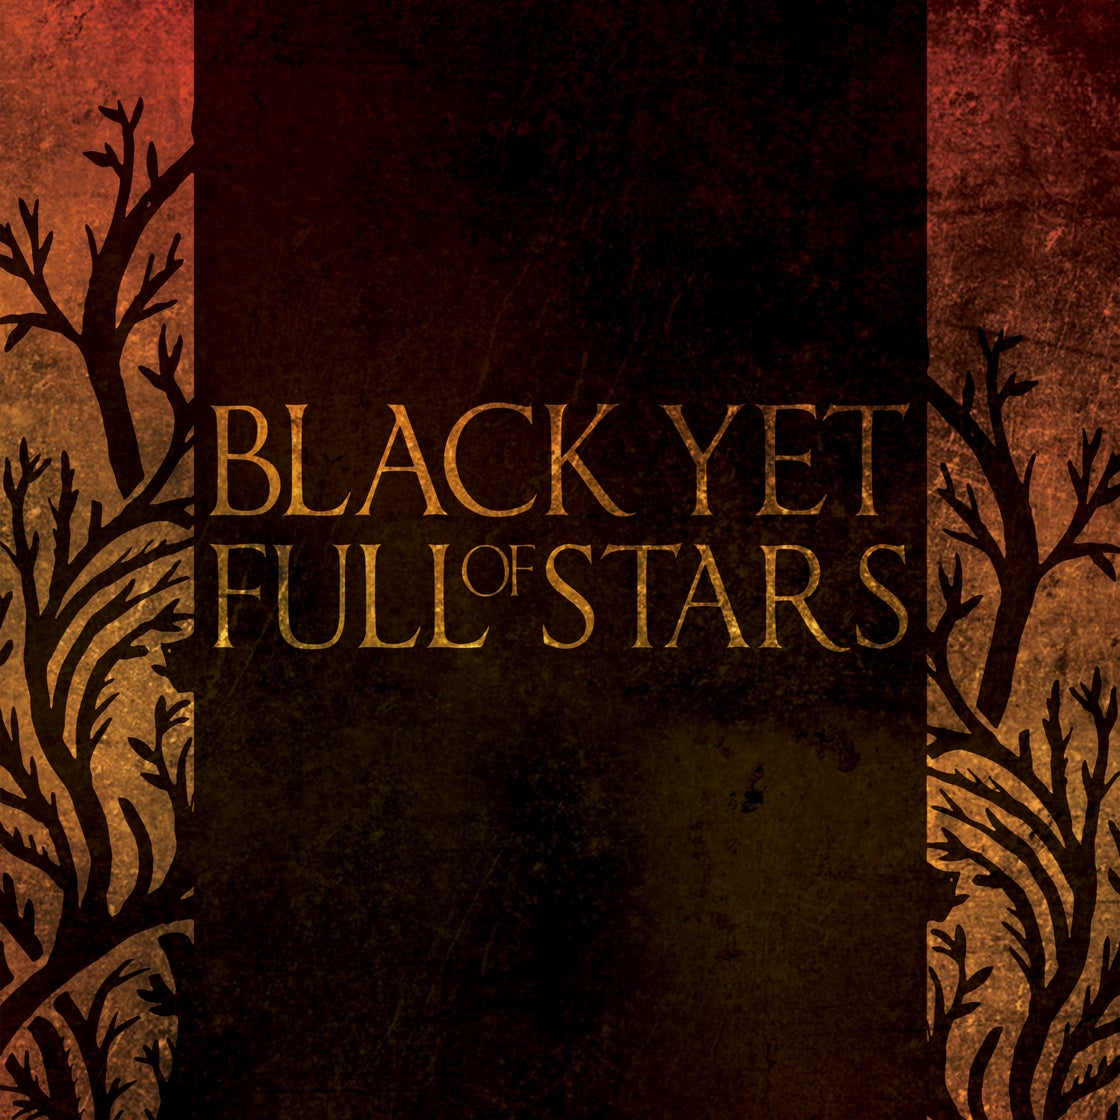 Image of Black yet Full of Stars